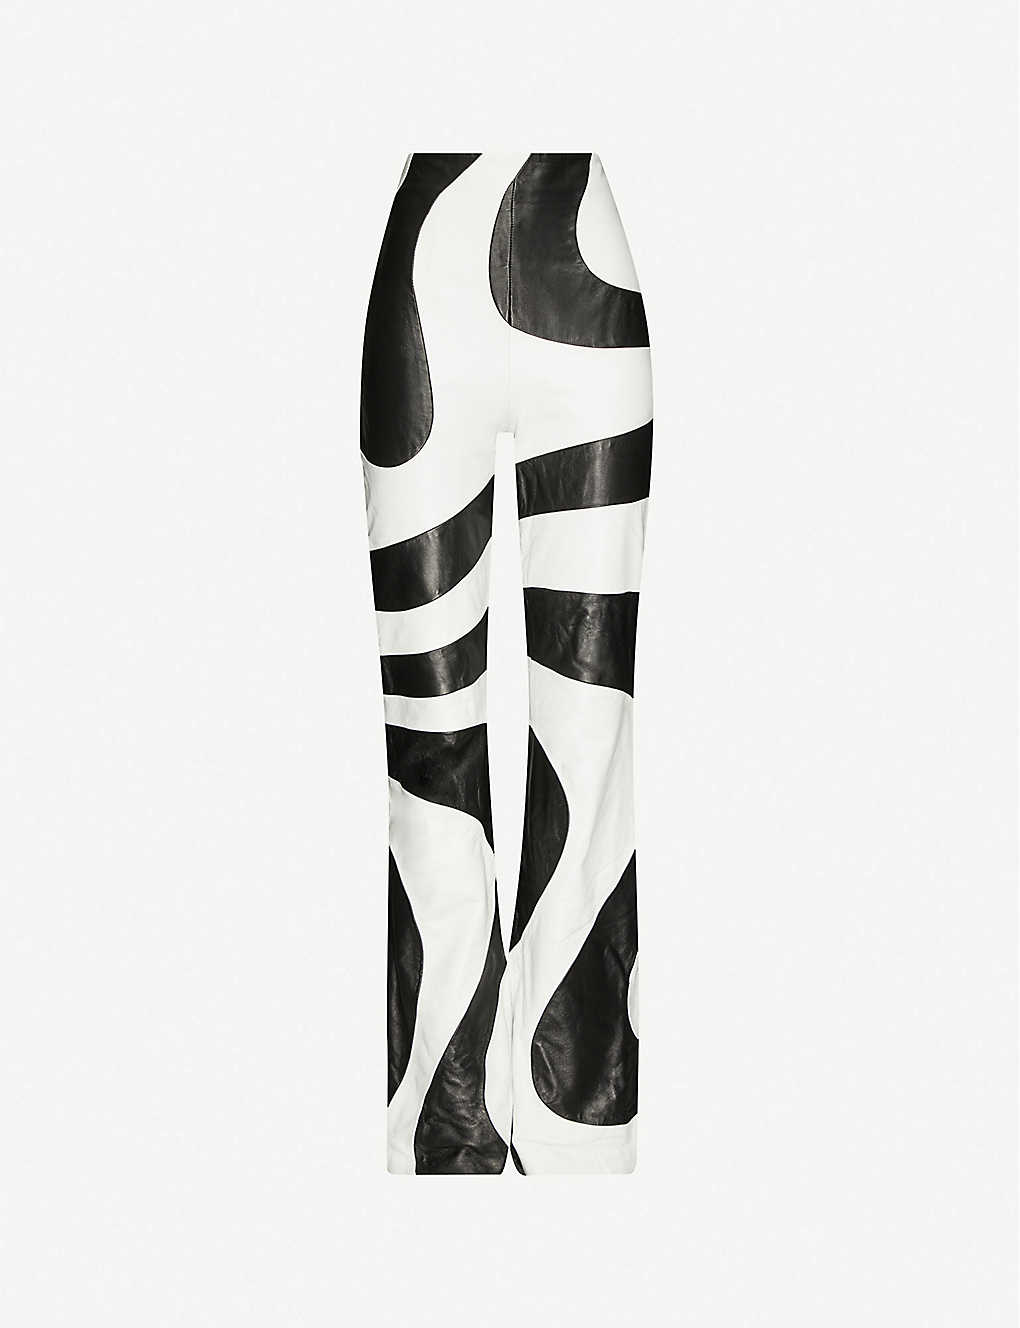 Twiggy flared high-rise leather trousers by 16ARLINGTON, available on selfridges.com Kendall Jenner Pants Exact Product